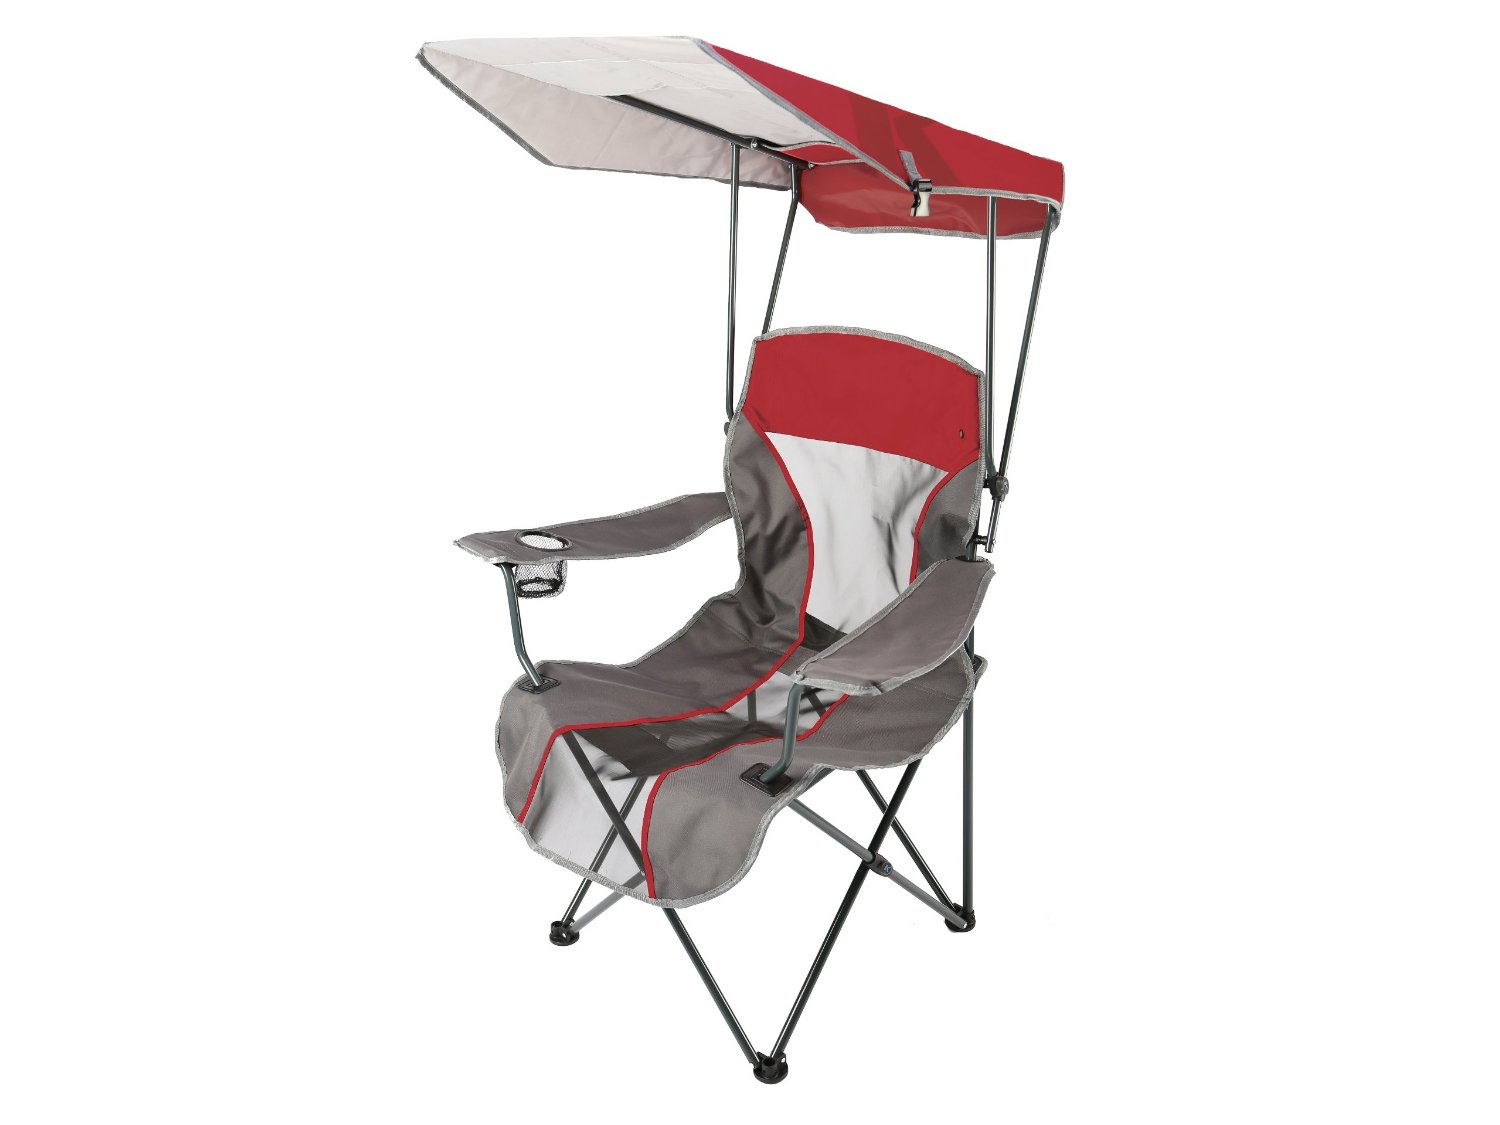 Camping Chair With Canopy Upc 795861801872 Kelsyus Premium Red Canopy Folding Chair